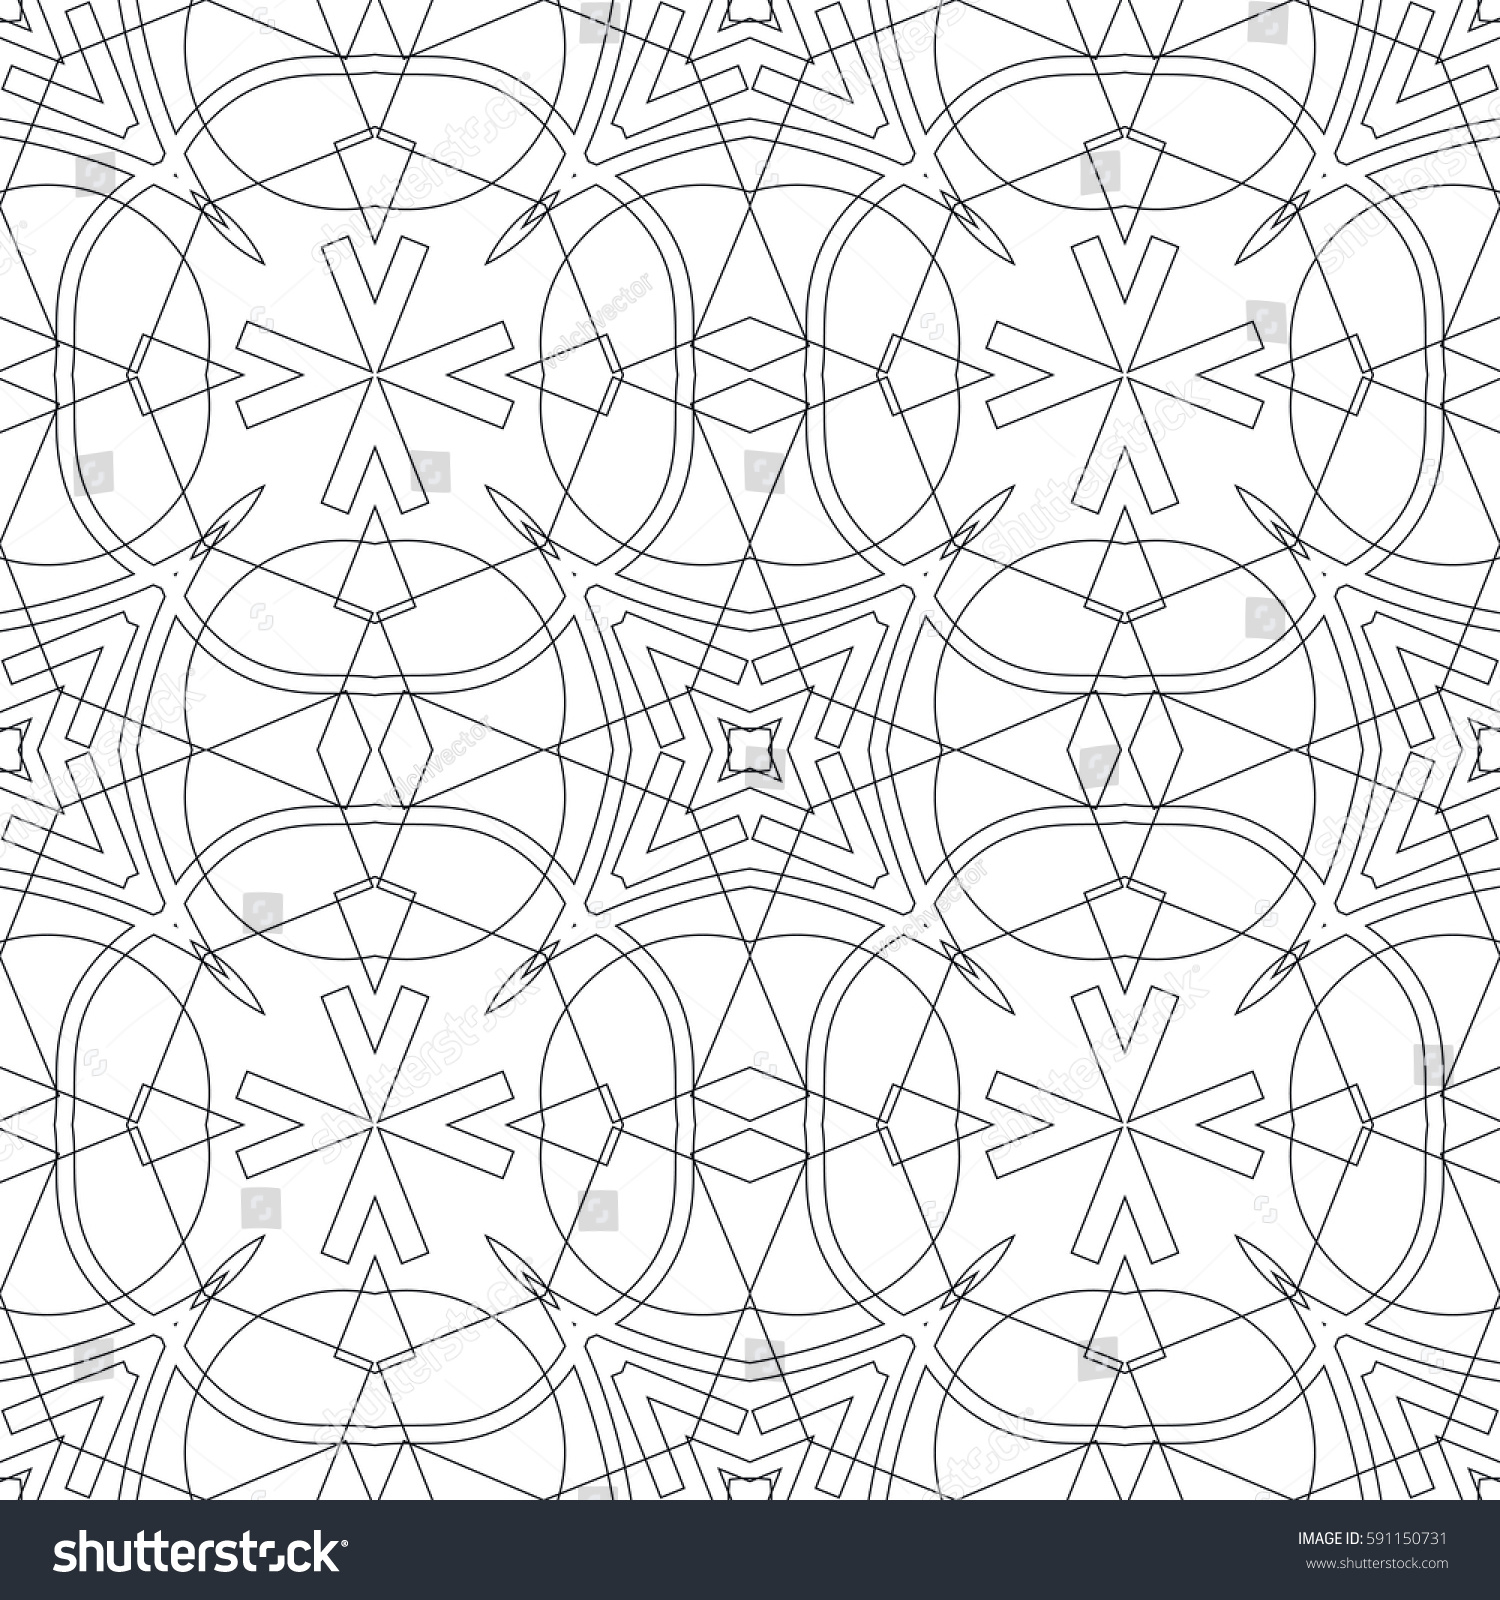 Islamic Geometric Pattern Black And White